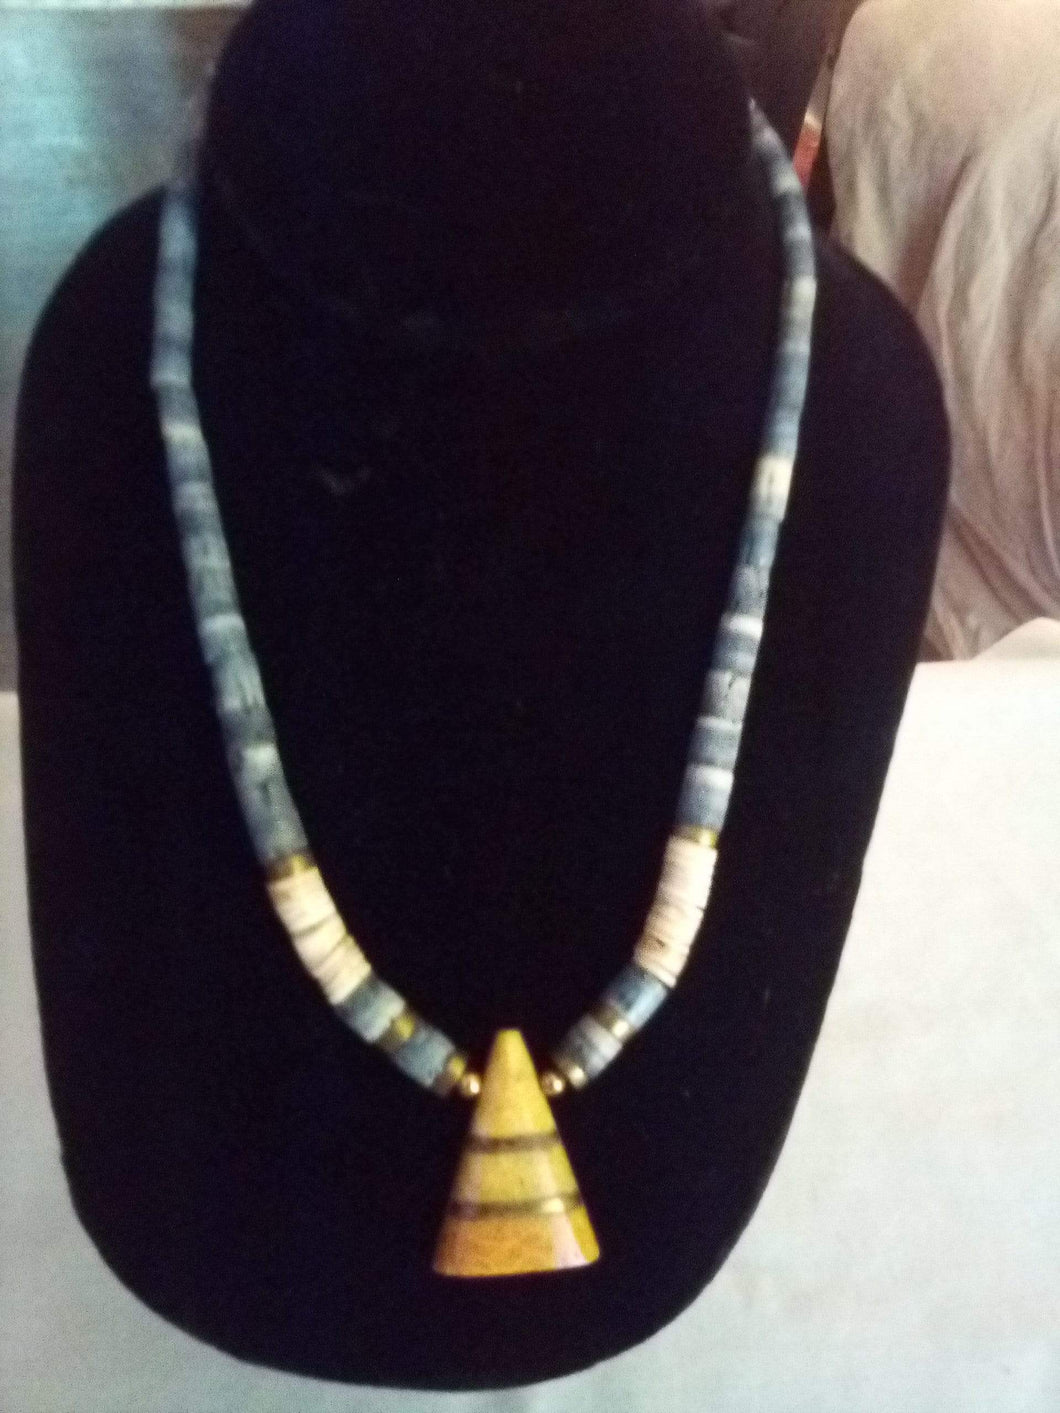 Neat shell/beaded necklace with pendent - B&P'sringsnthings